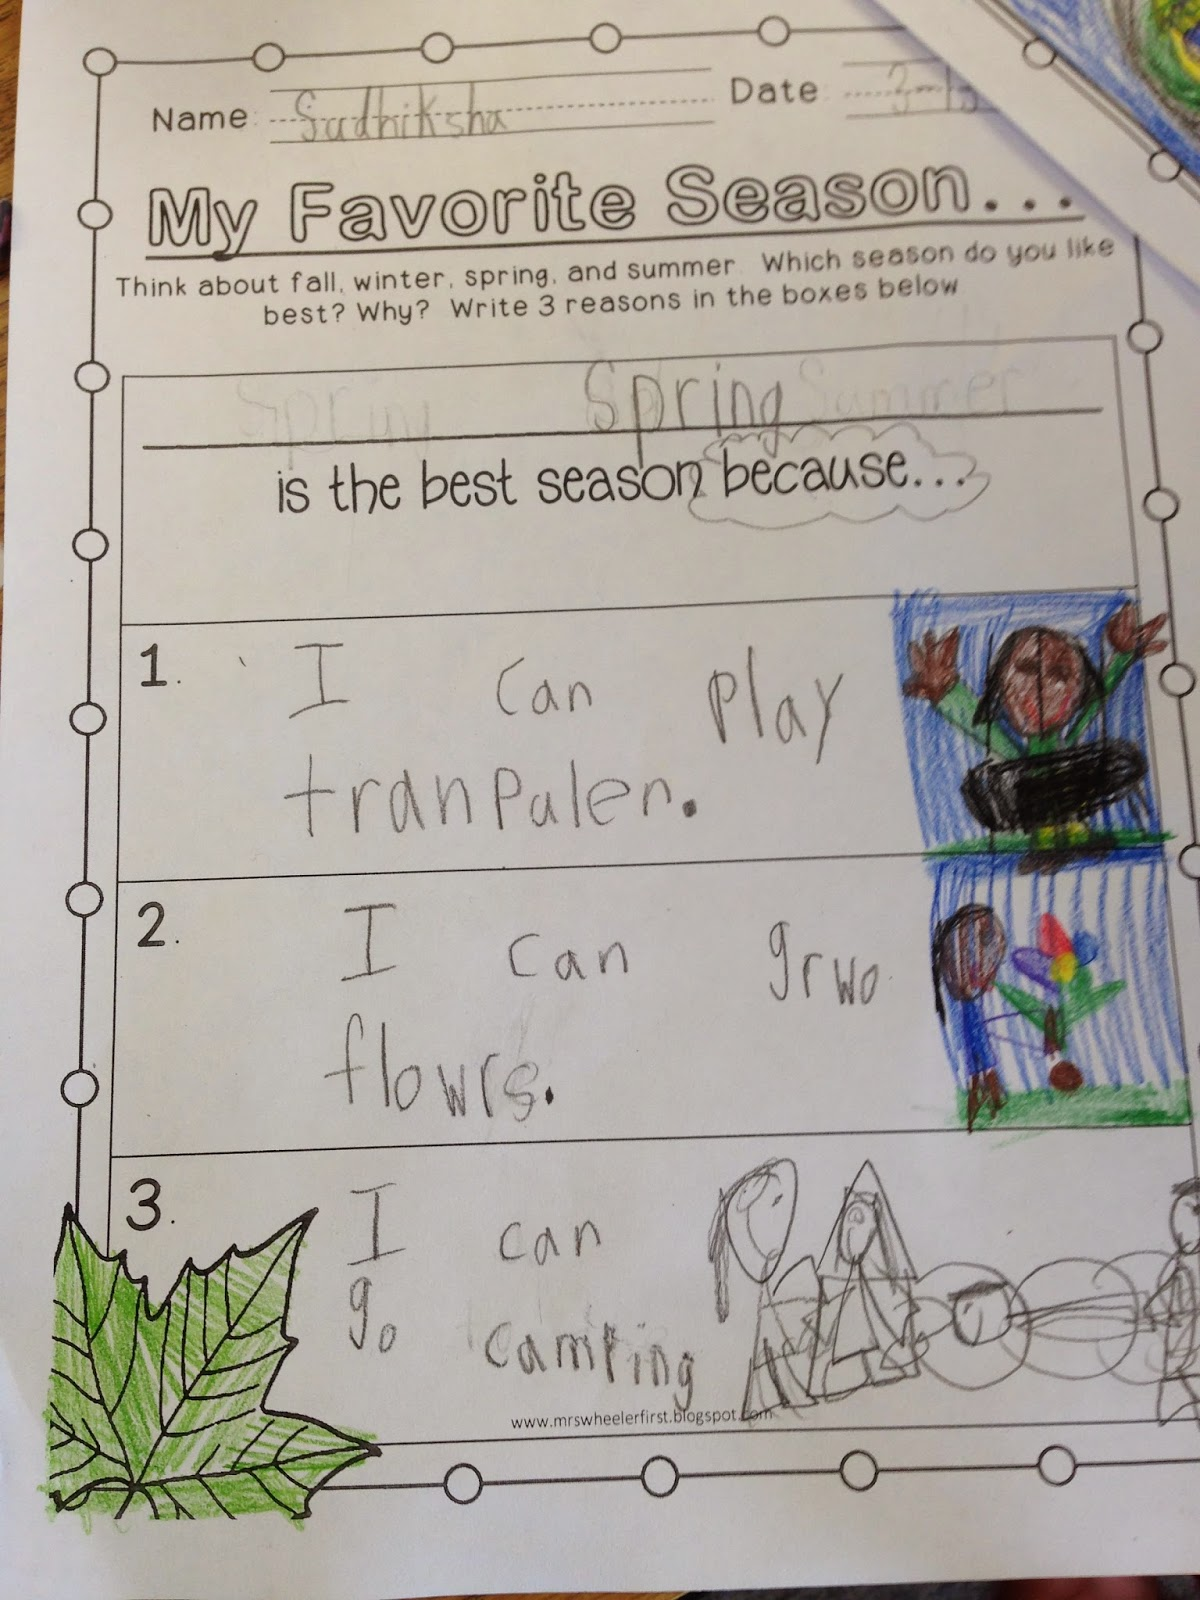 tales from a k 1 classroom march 2014